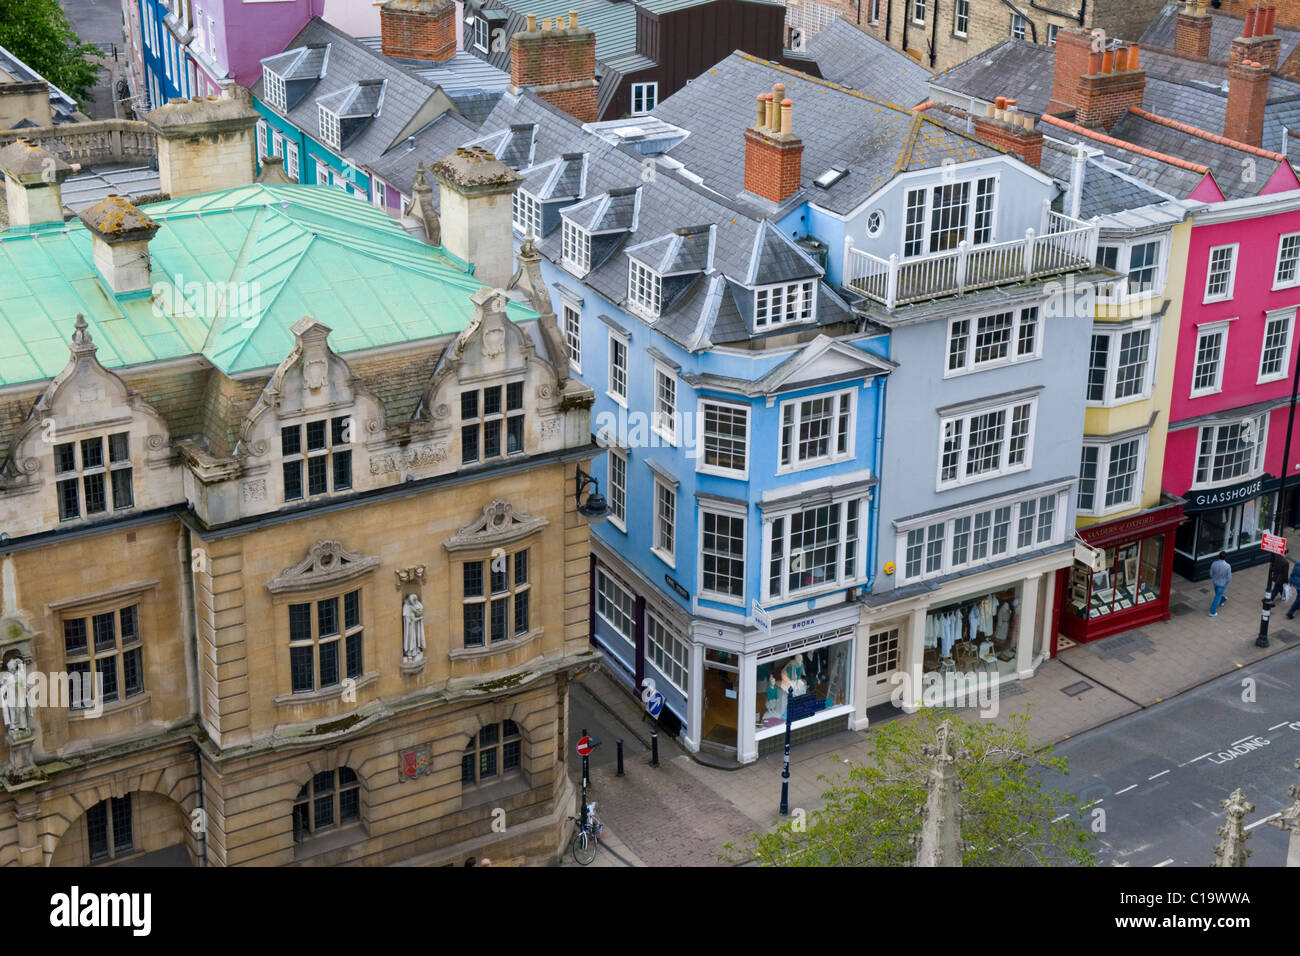 Aerial View of the Rhodes Building, Oriel College and Other Colourful Buildings in Oxford, England, UK - Stock Image